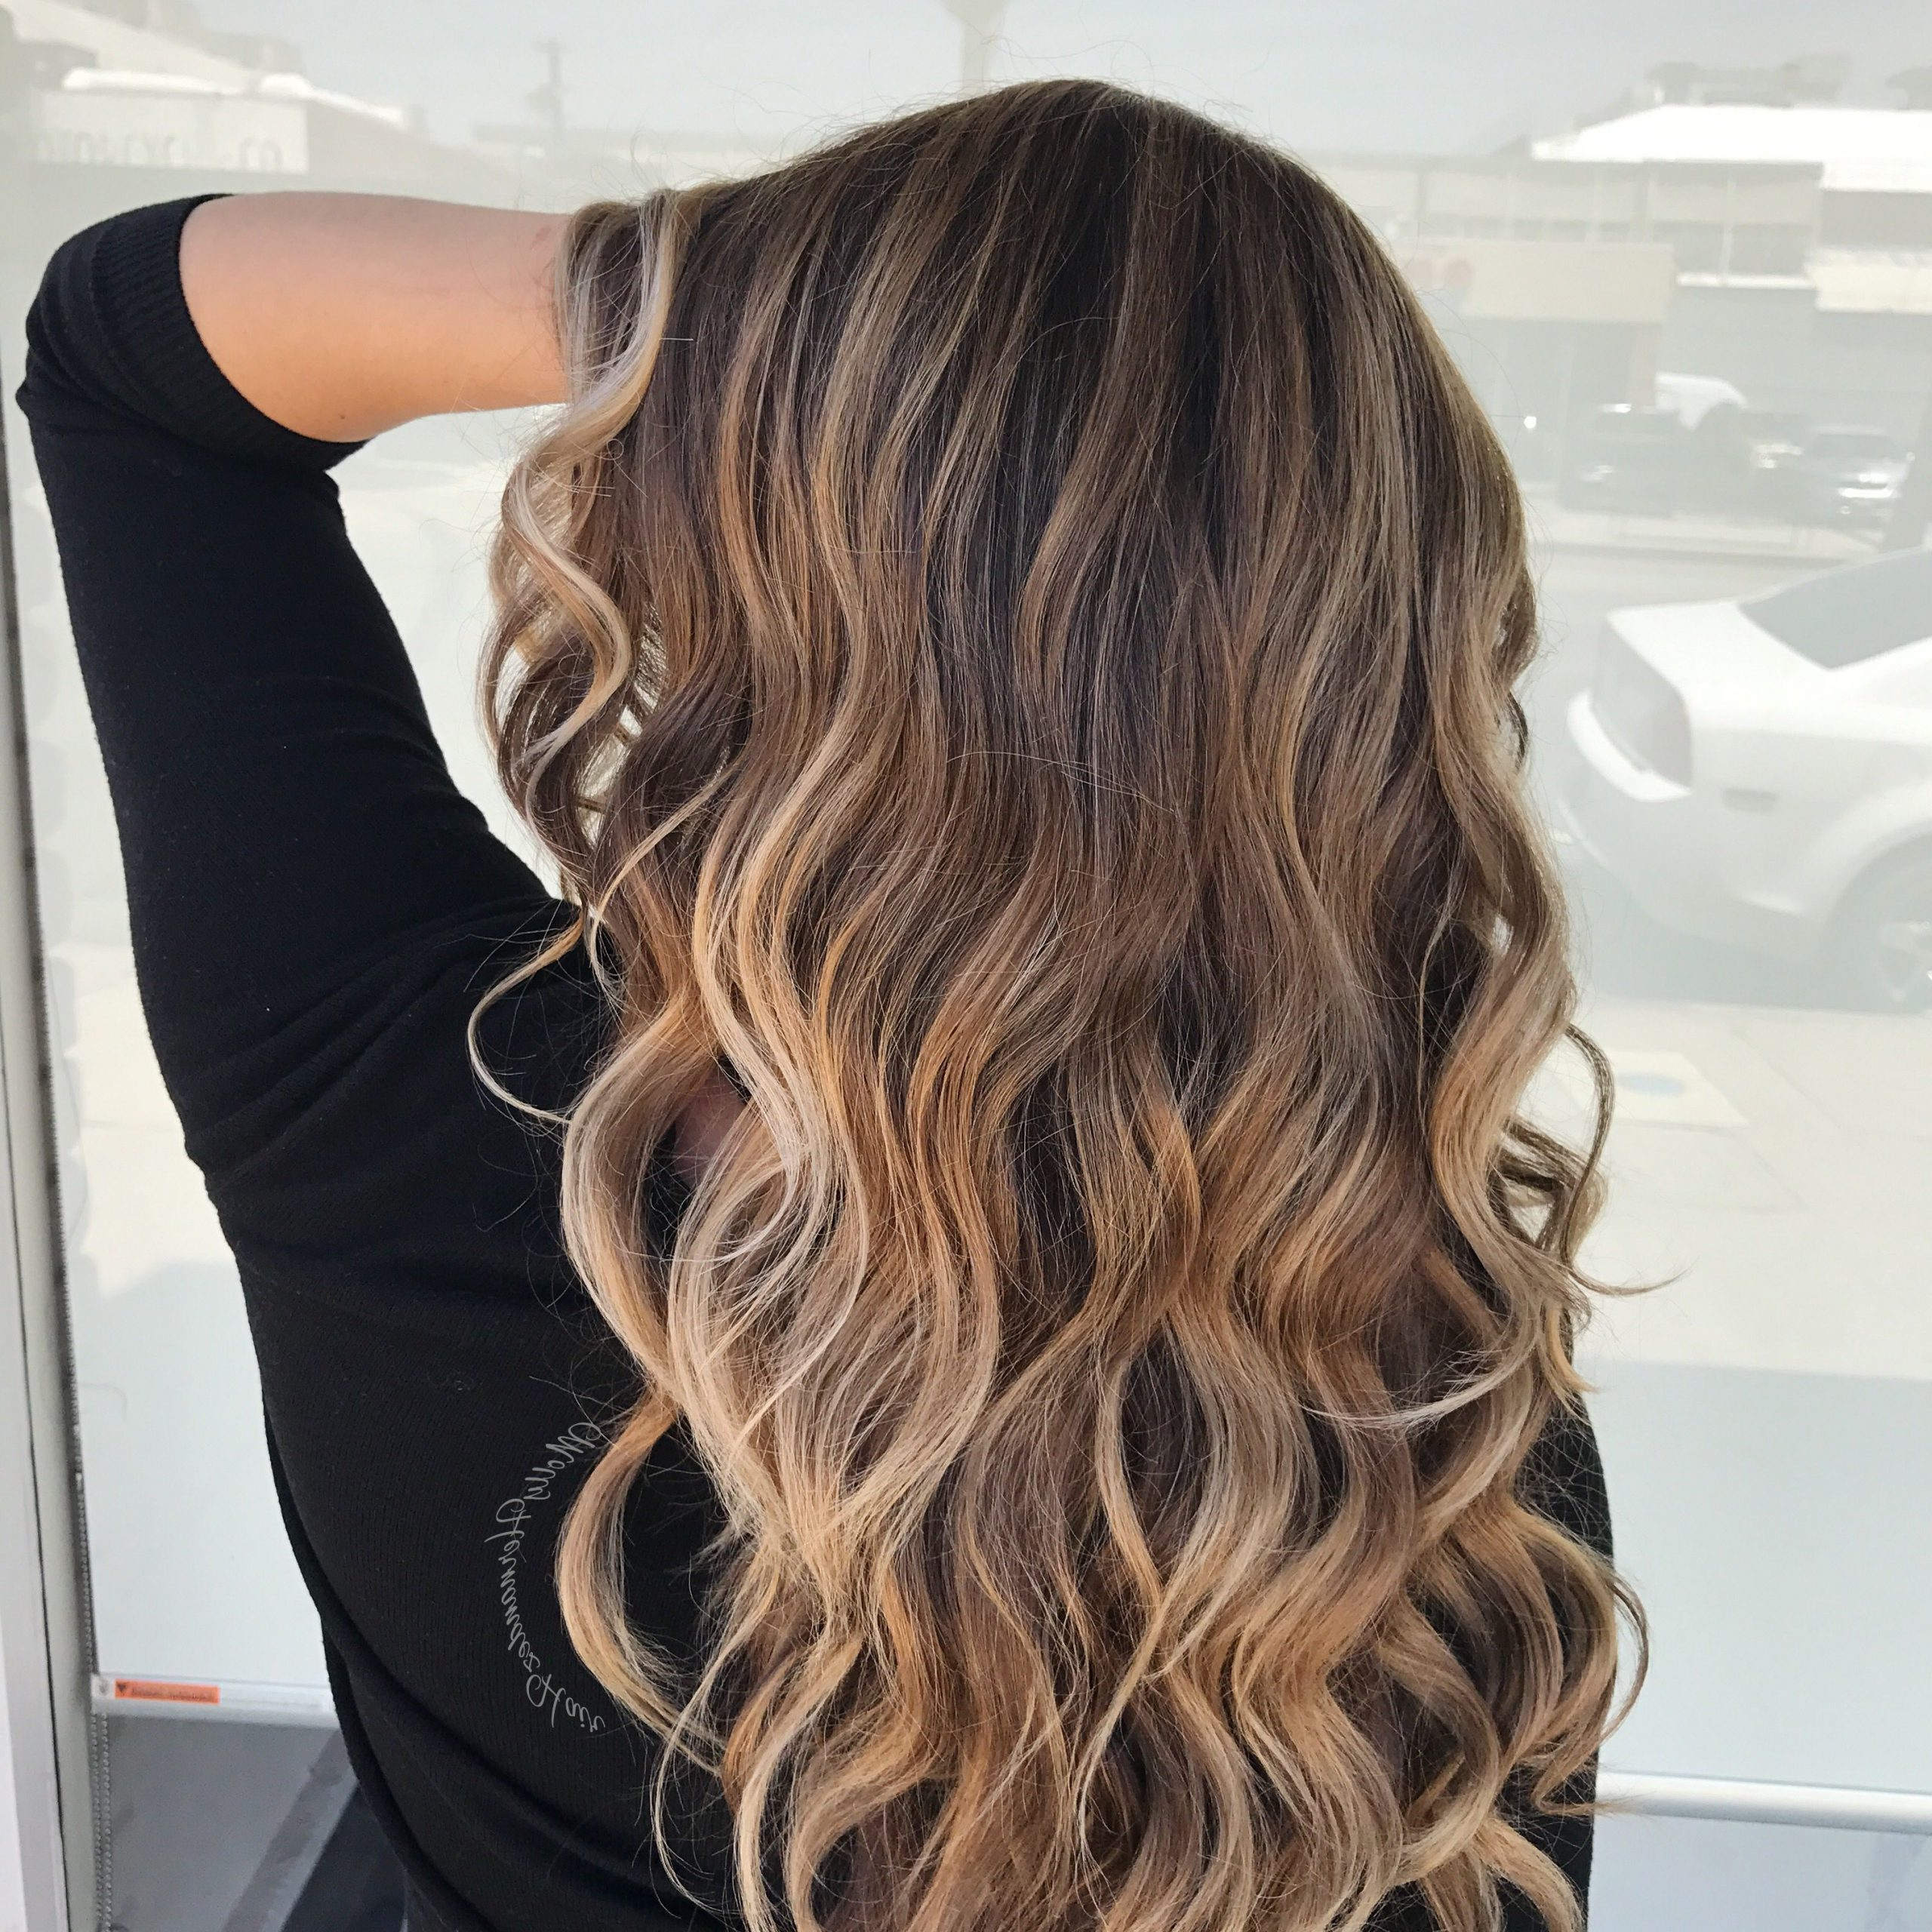 Current Blonde Balayage Ombre Hairstyles Throughout Blonde Balayage Highlights On Brown Hair, Bronde Ombré (View 7 of 20)